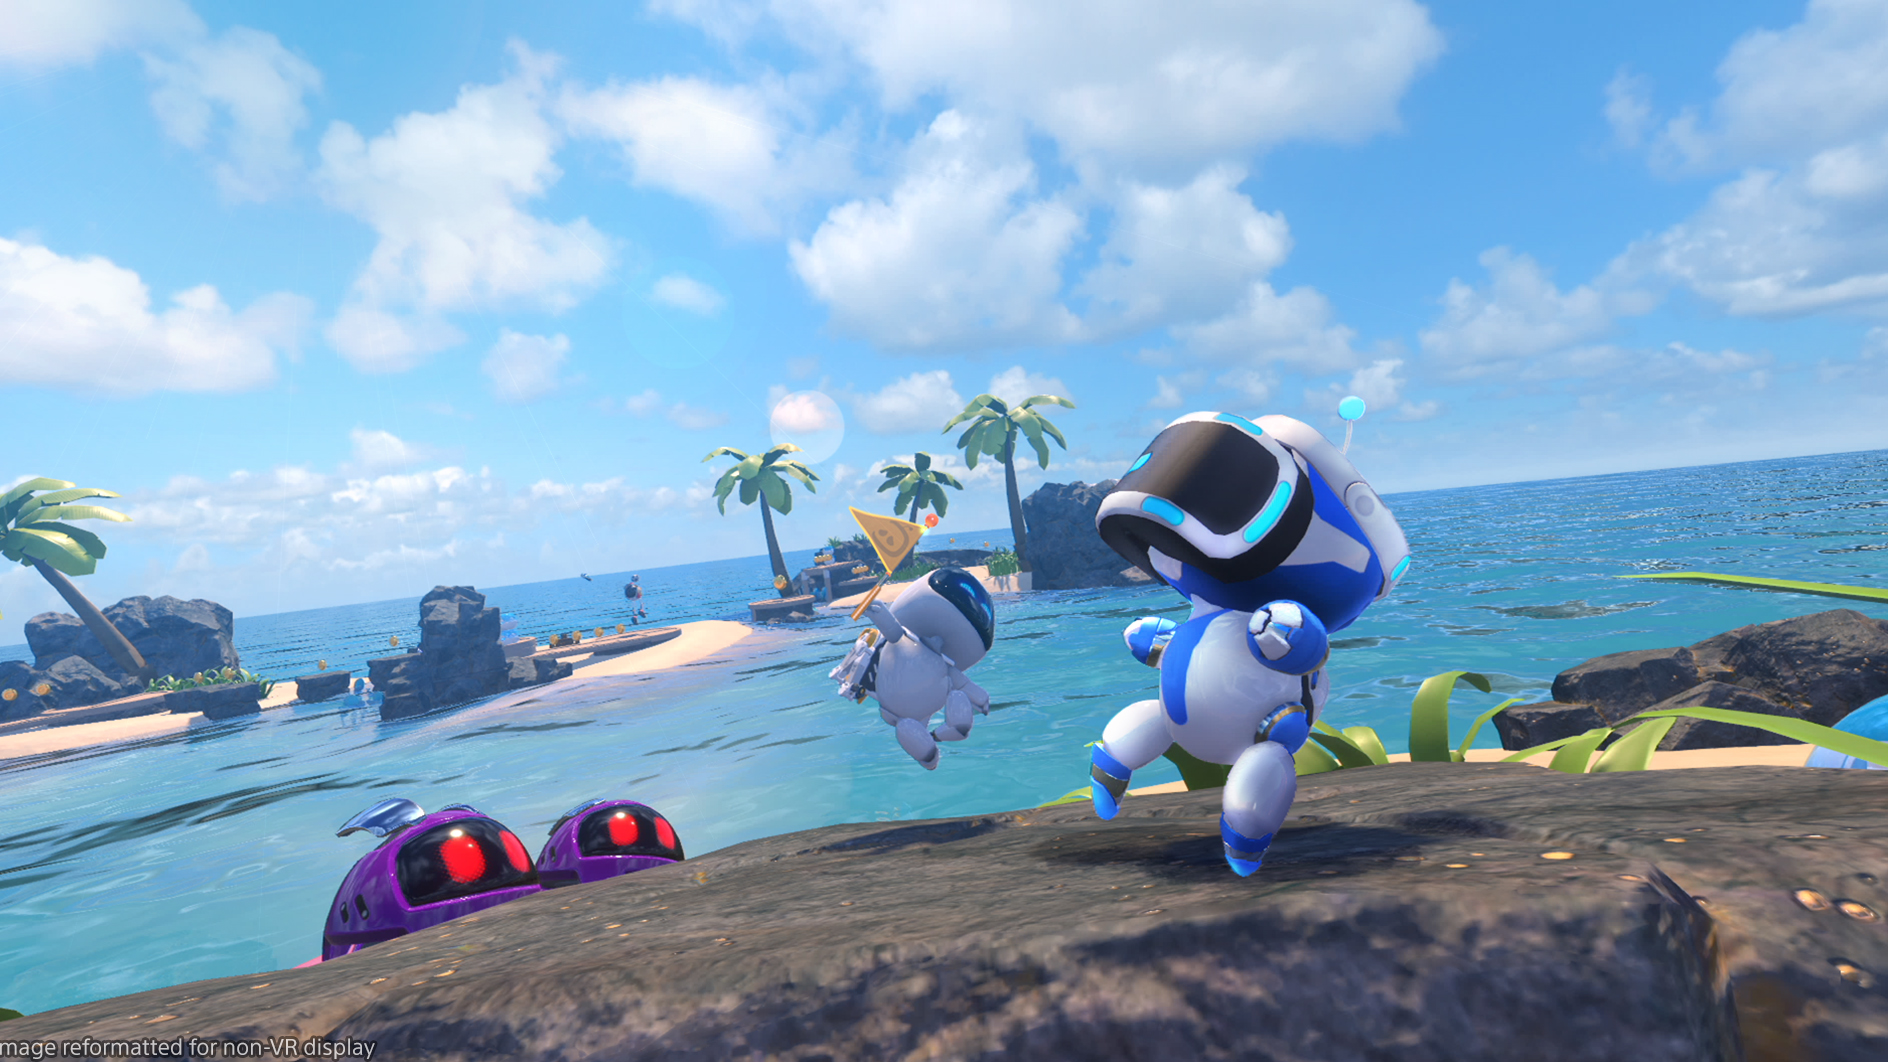 The best VR games for kids